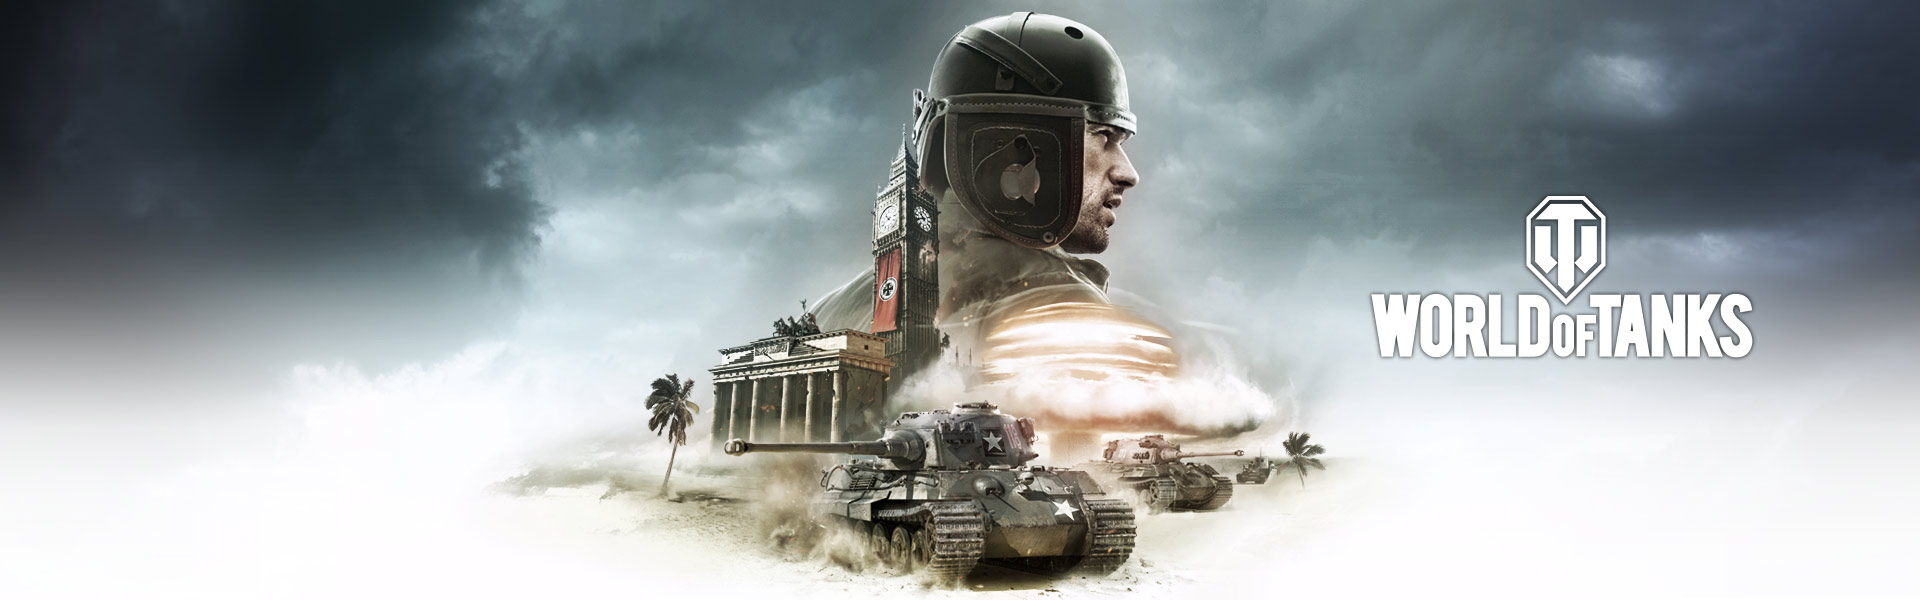 World Map With Major Cities Names%0A World of tanks  multiple tanks move in front of a building on a beach with